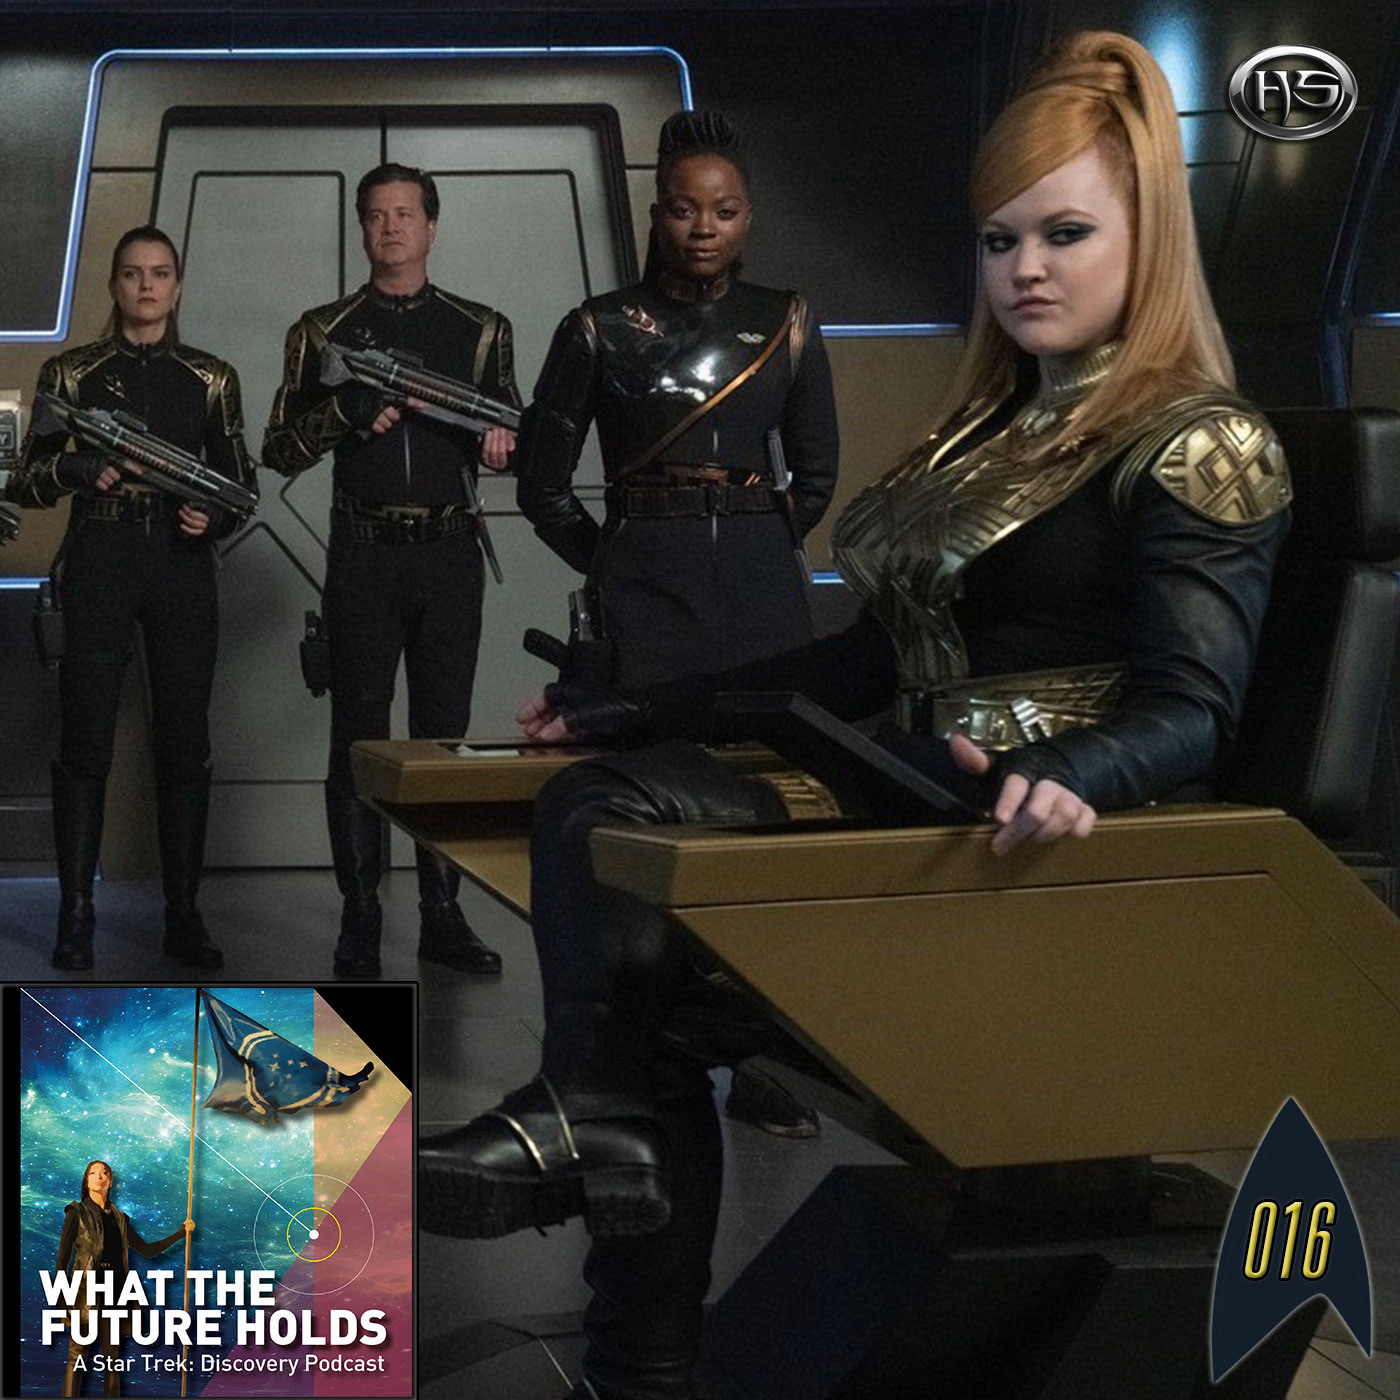 What The Future Holds Episode 16